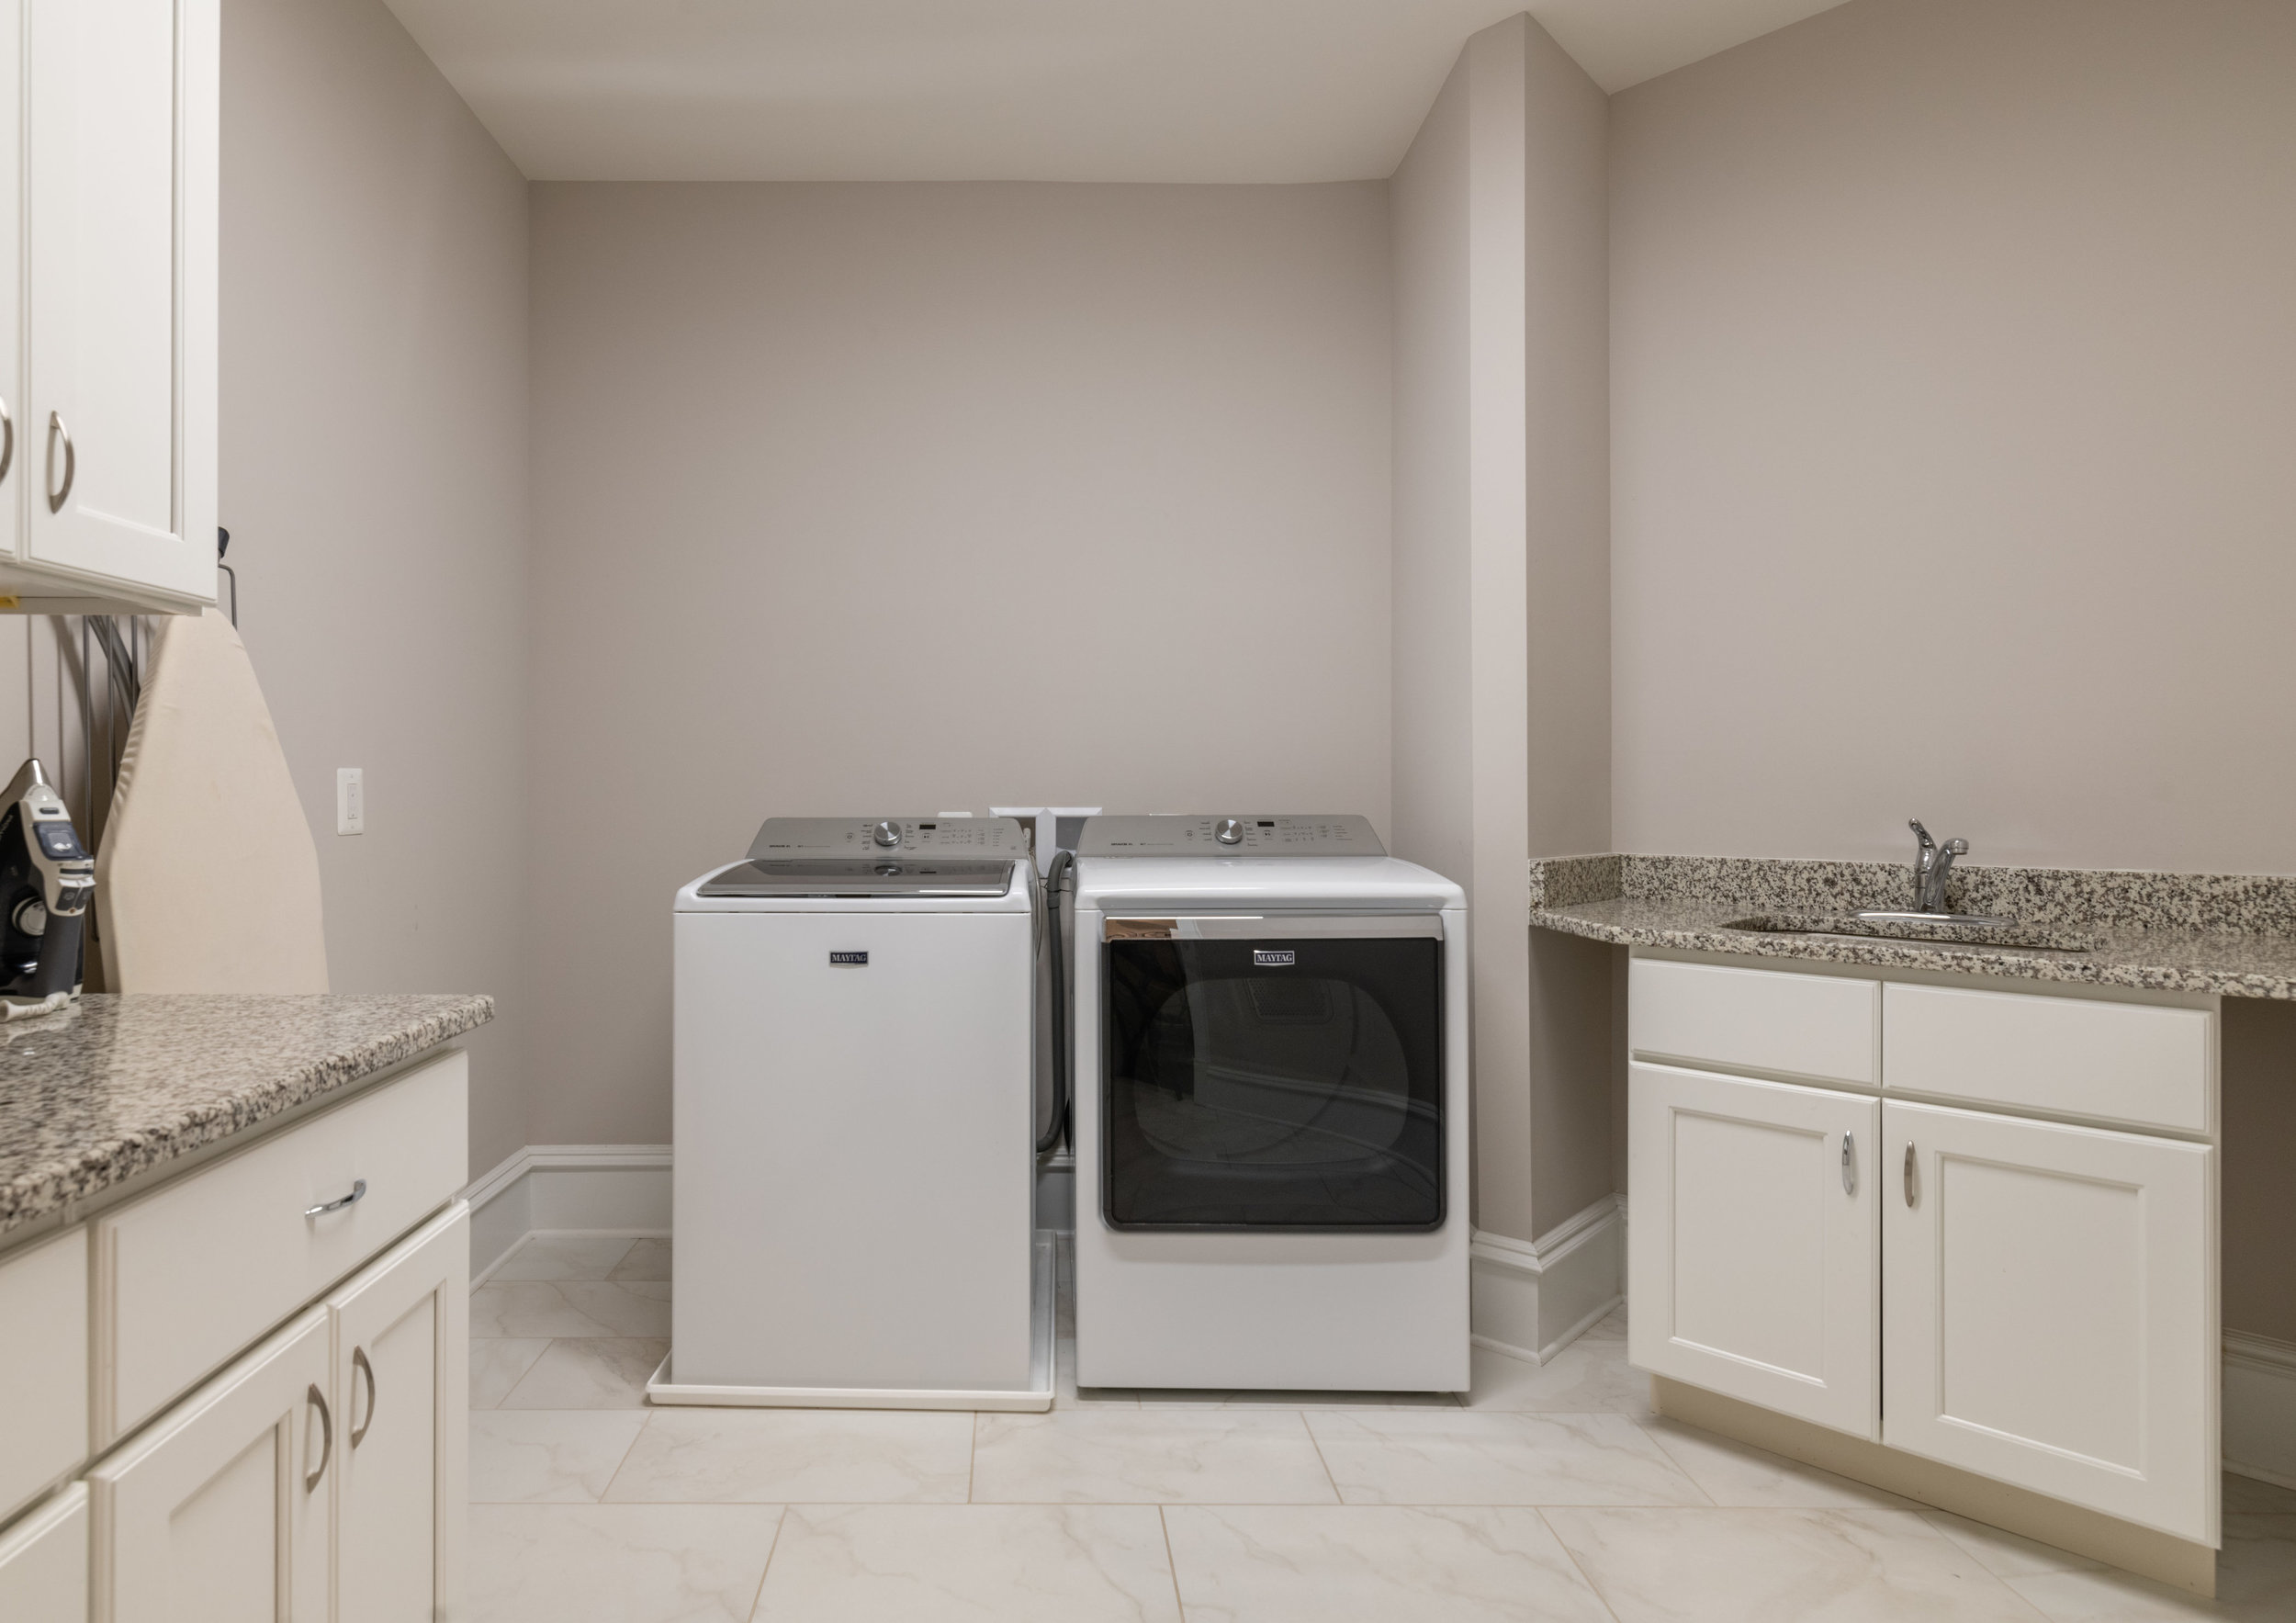 Laundry with Maytag Washer and Dryer